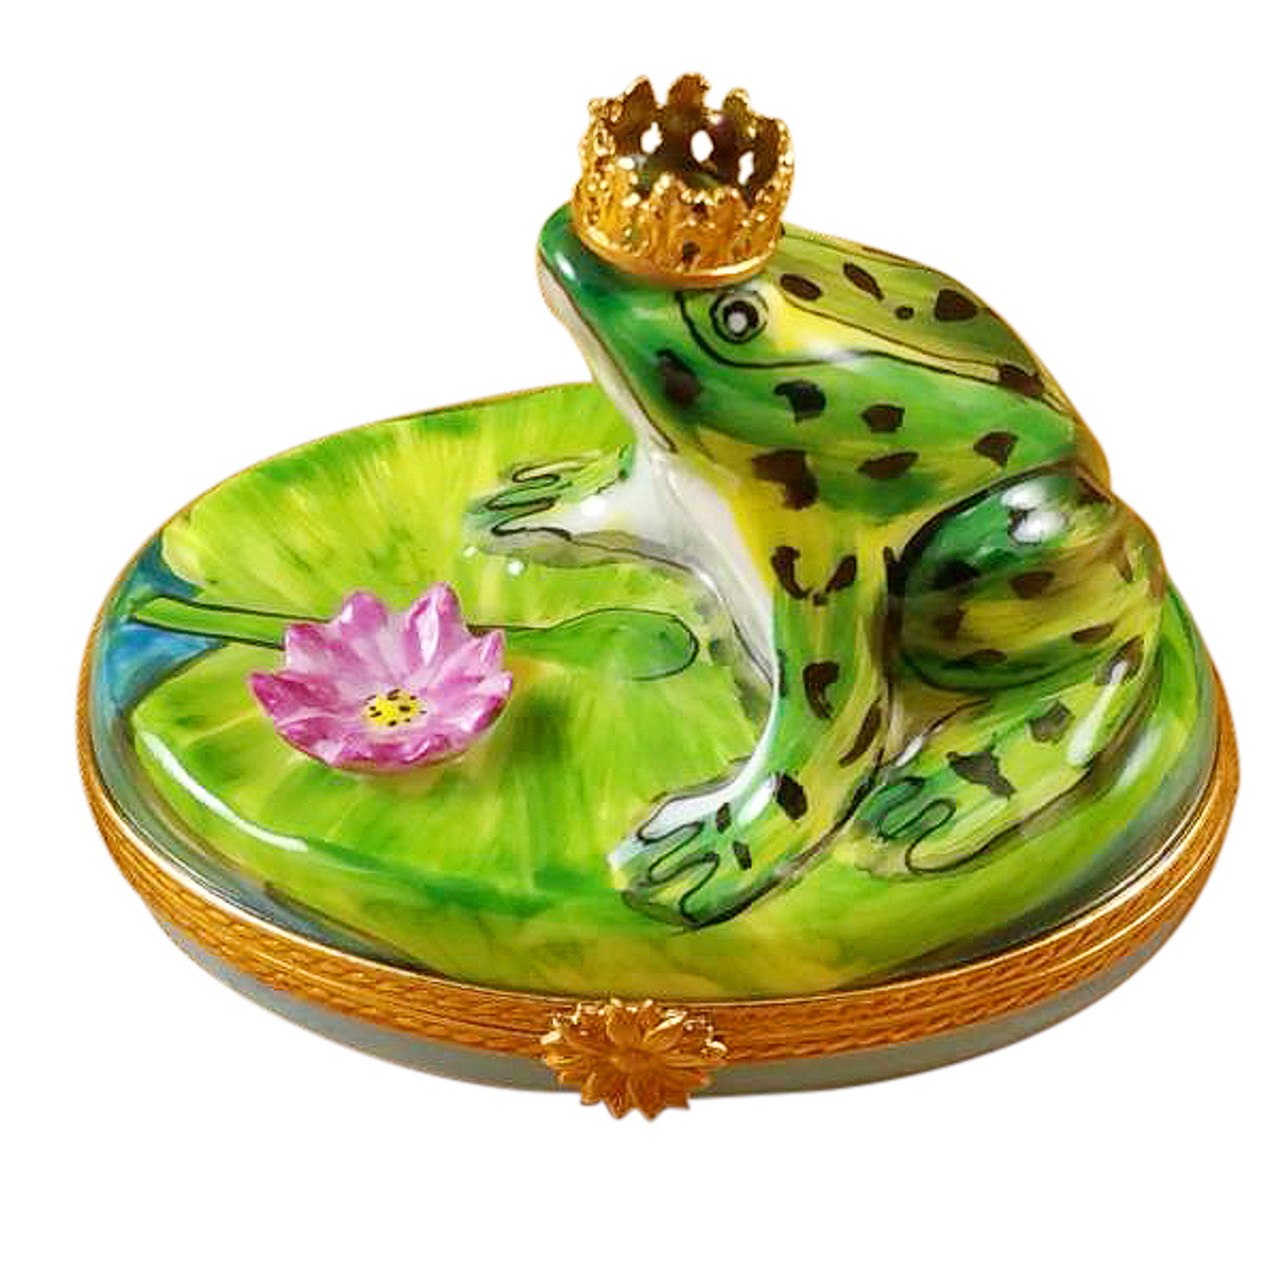 Frog W/Crown Rochard Limoges Box